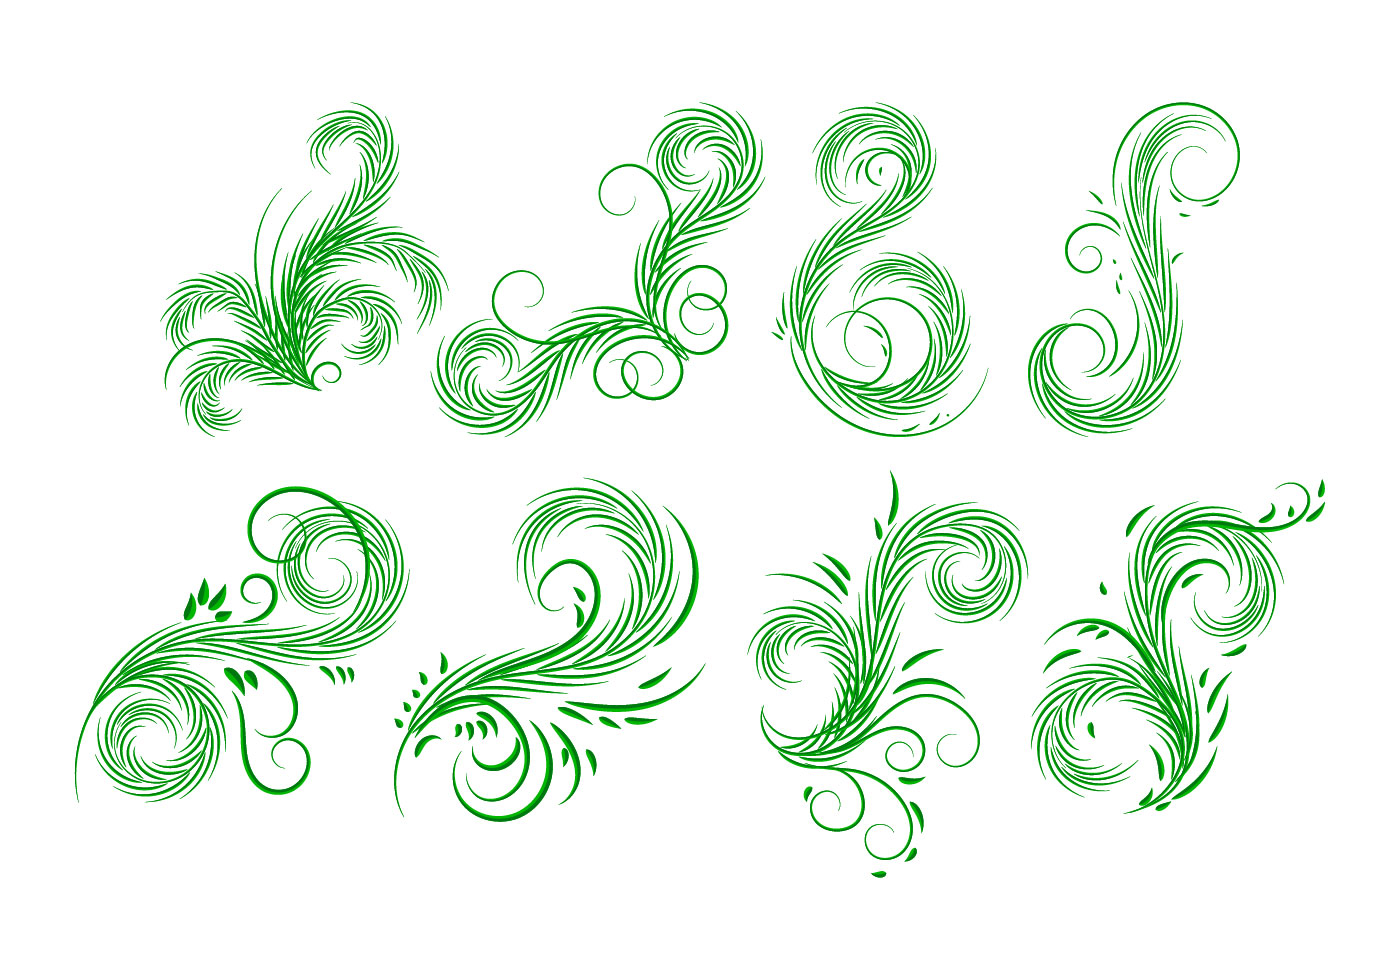 Palm Leaves Elements Vector - Download Free Vector Art, Stock ...